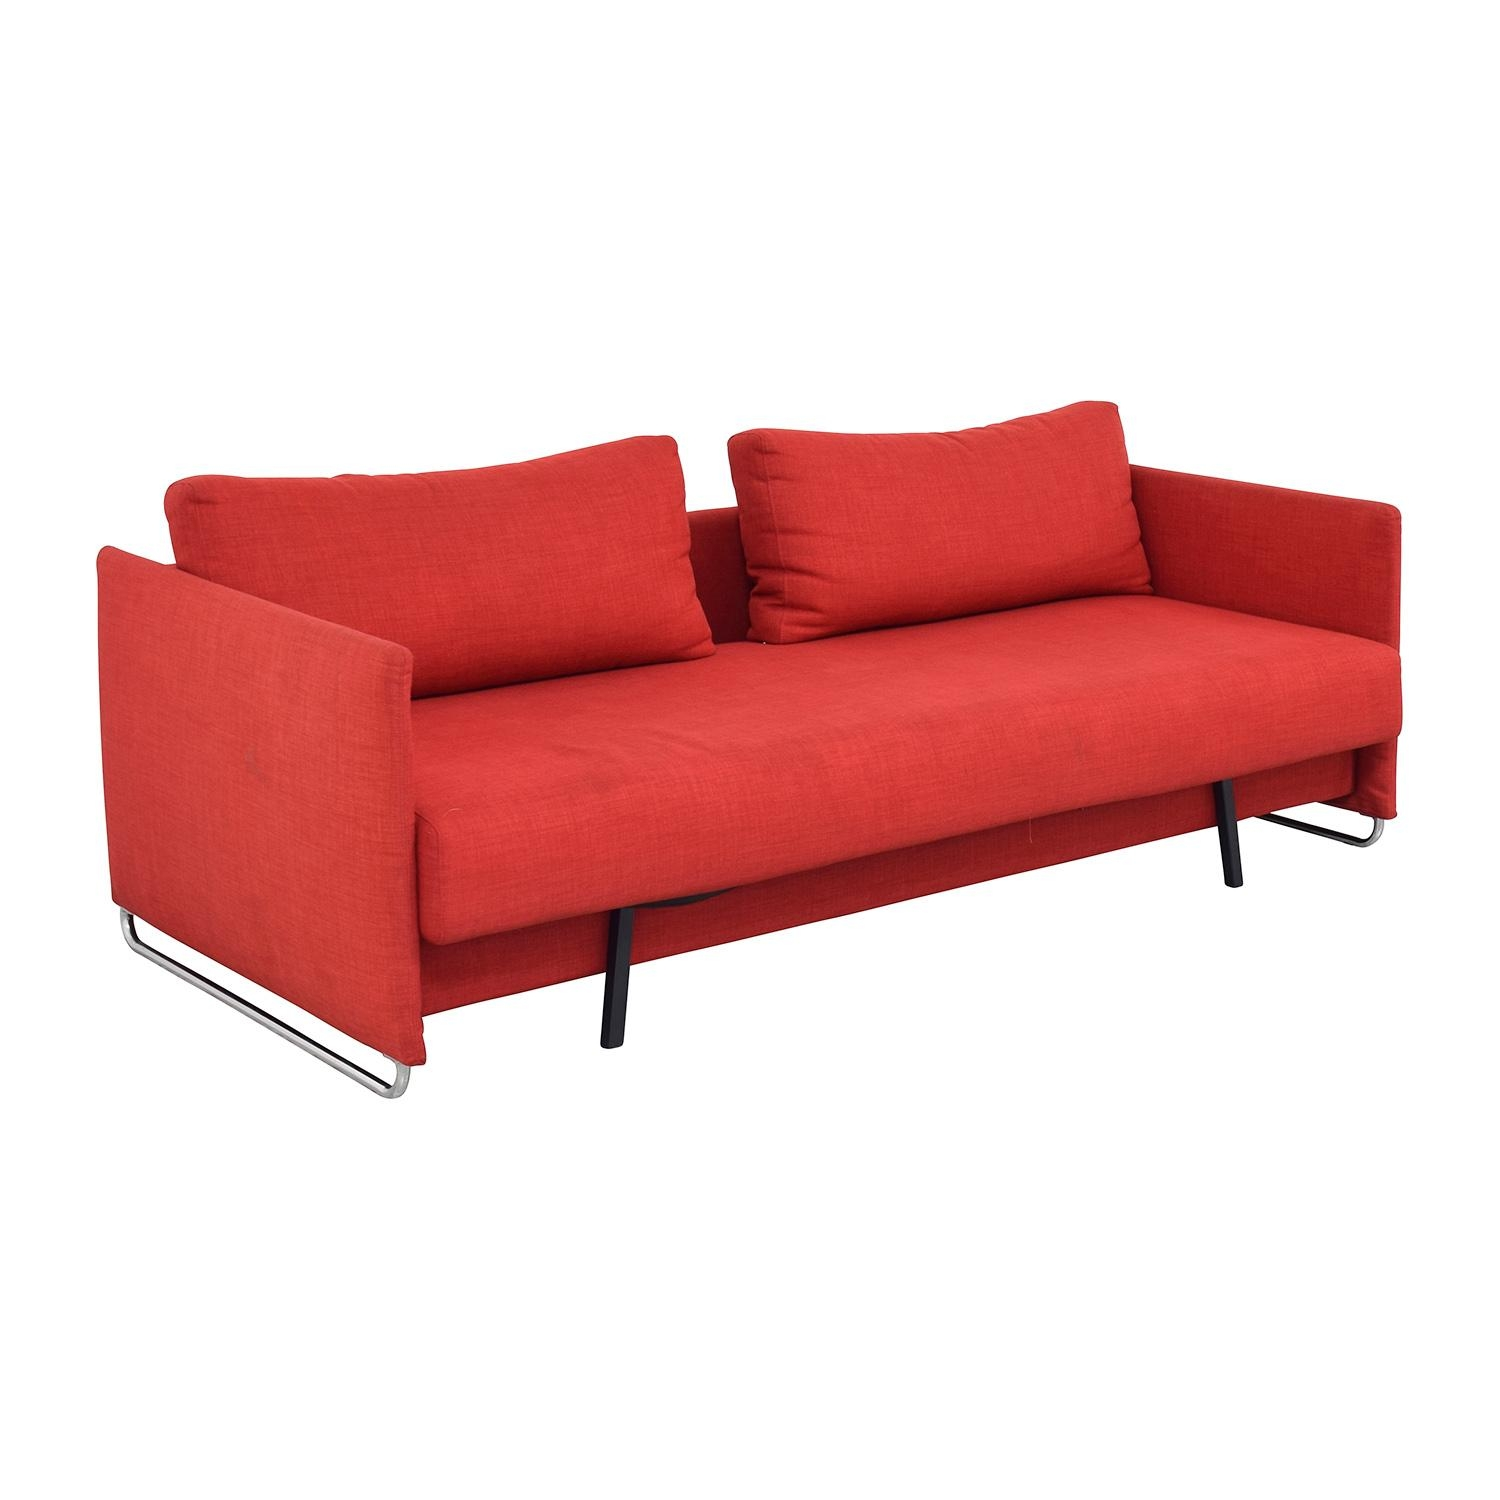 63% Off - Cb2 Cb2 Tandom Red Sleeper Sofa / Sofas with regard to Red Sleeper Sofa